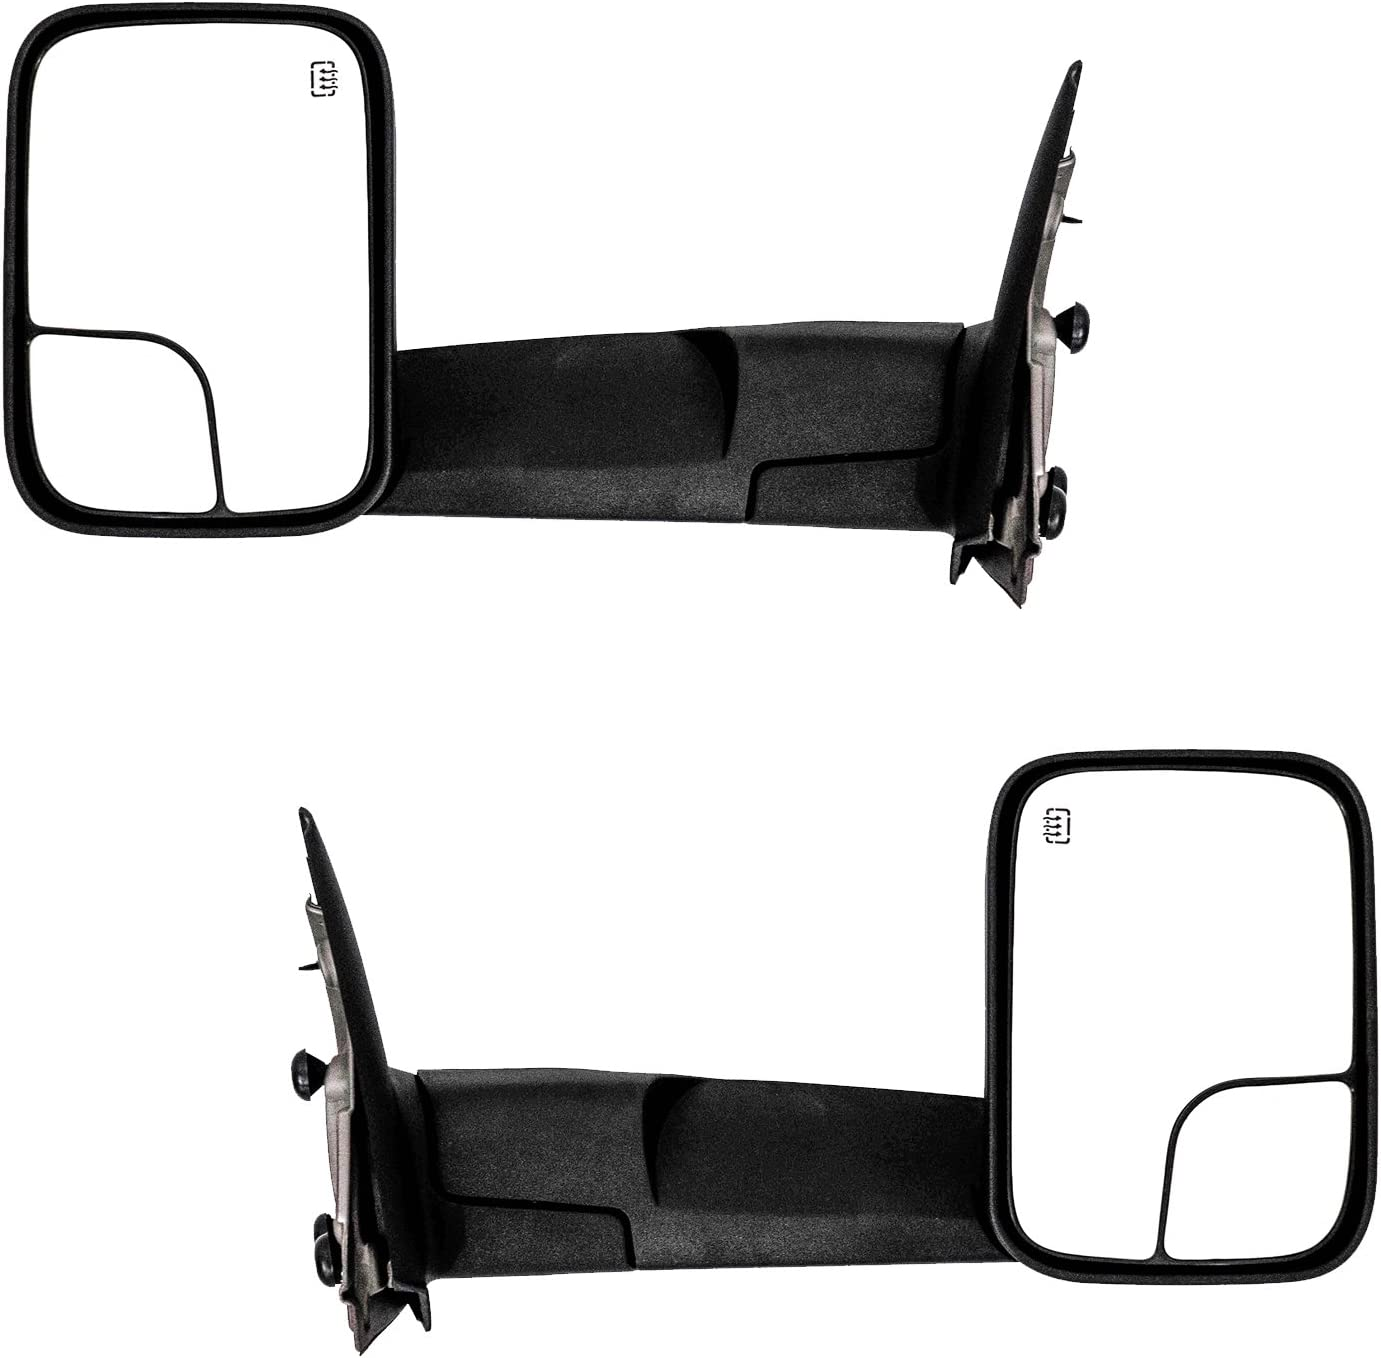 Black Pair Set Paragon Towing Mirrors for 2002-08 Dodge RAM 1500 /& 2003-09 Dodge RAM 2500//3500 Heated Powered